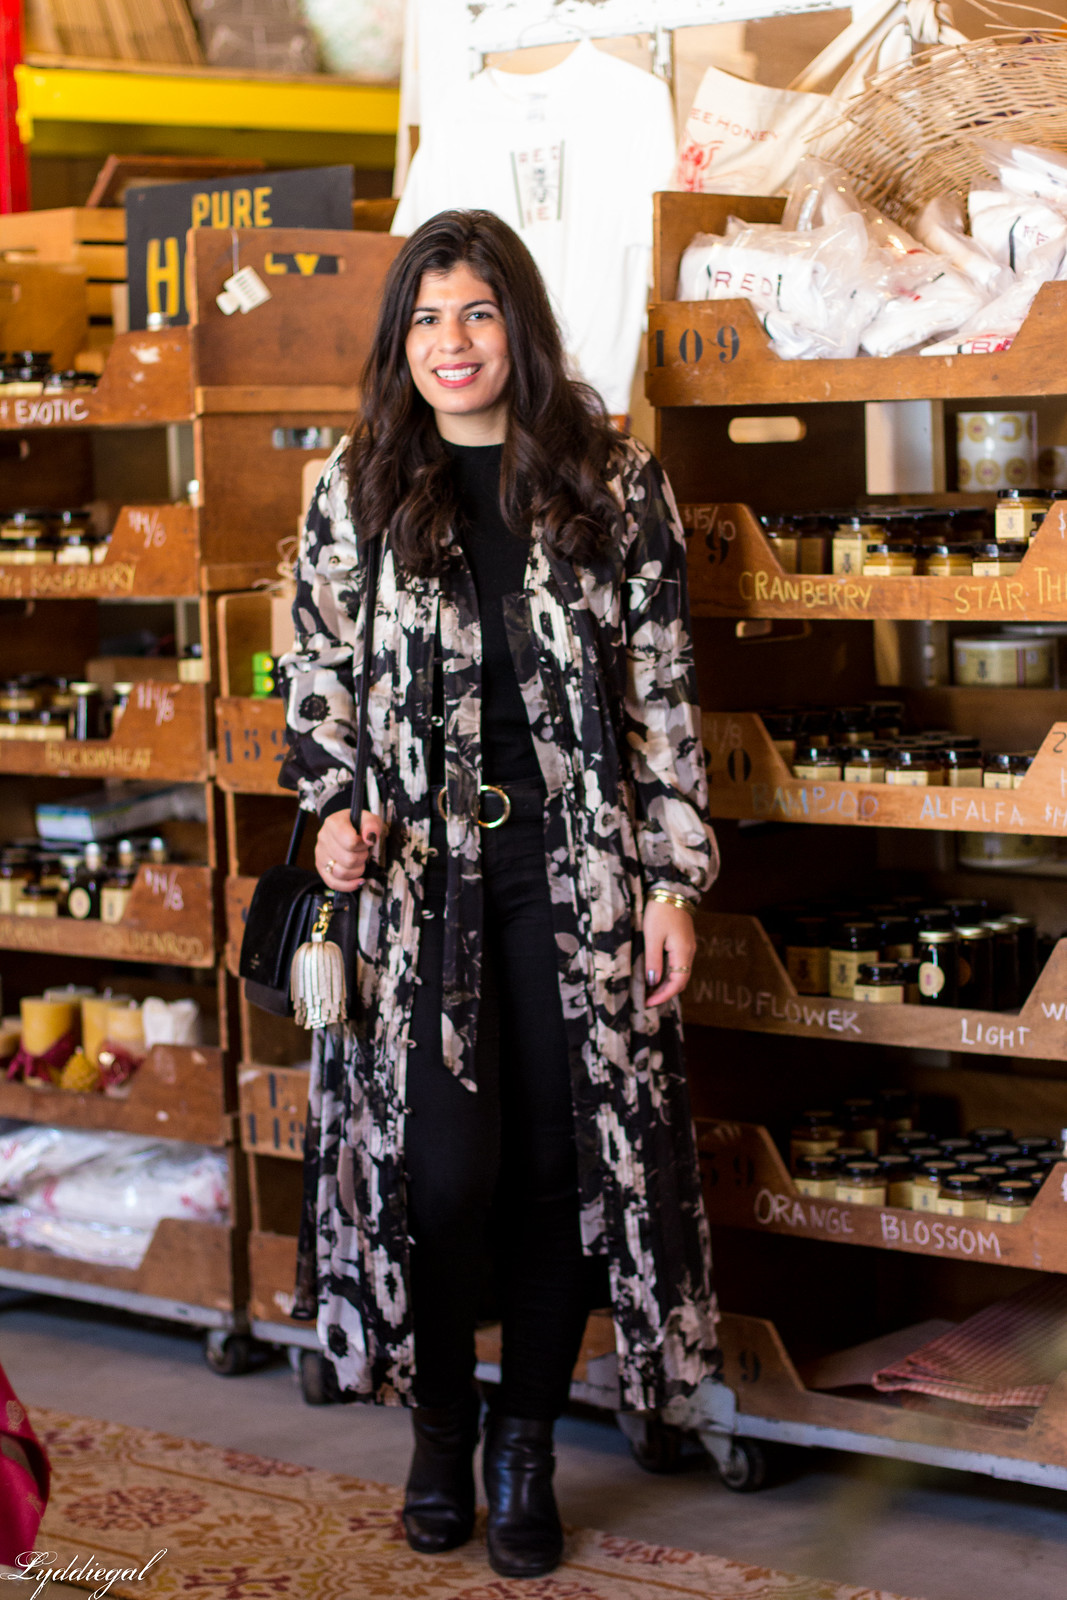 dark floral maxi dress as duster over black jeans, sweater and boots for winter-8.jpg